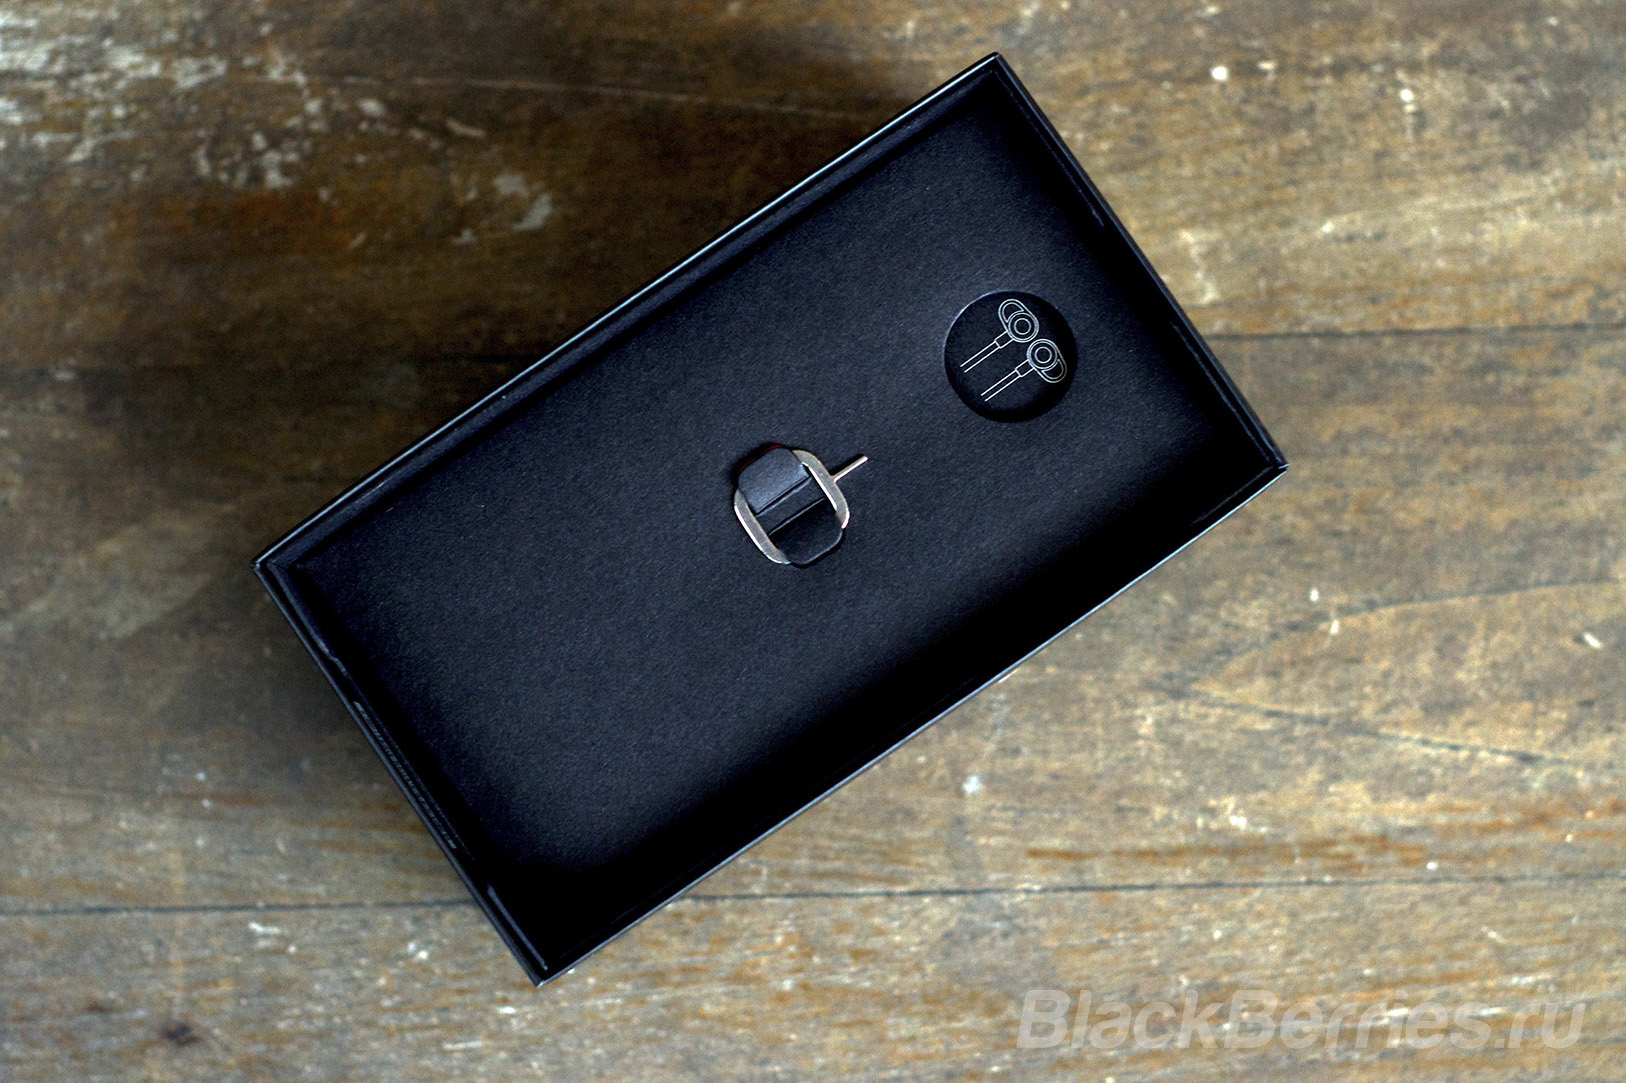 BlackBerry-Classic-2-Review-05